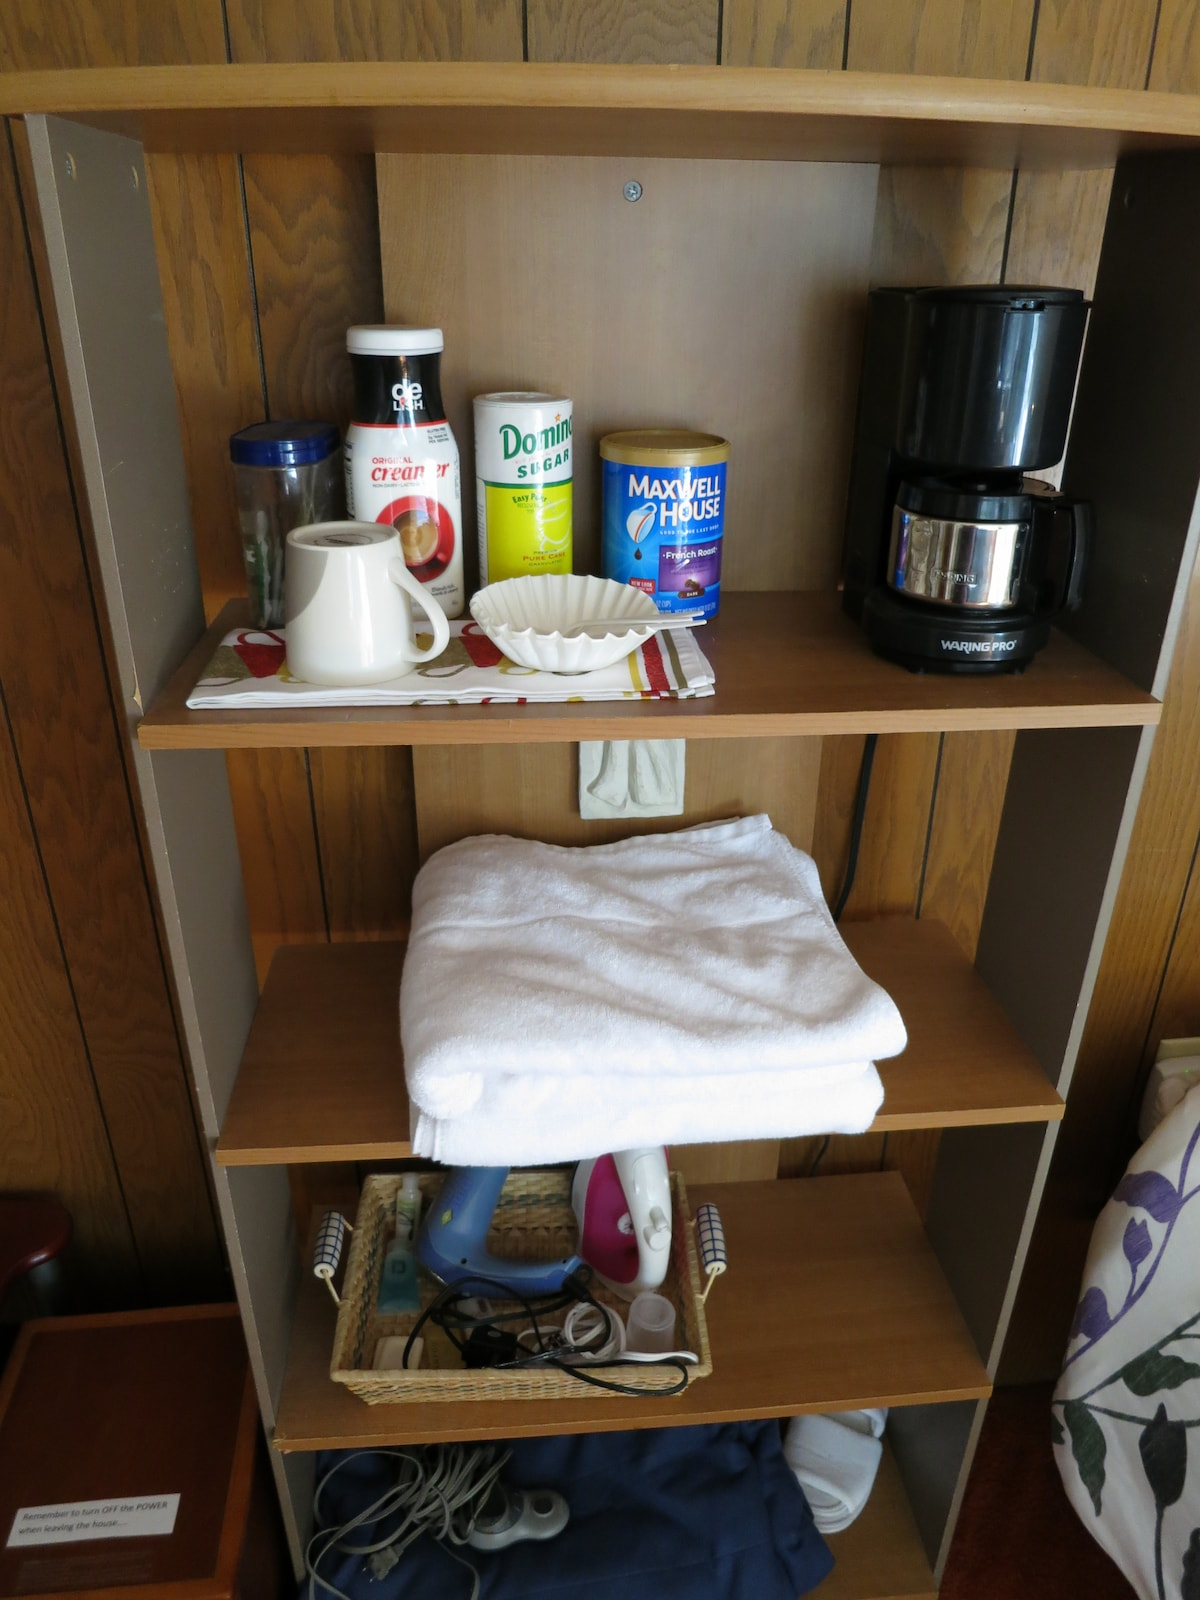 Basic toiletries, towels, and tea/coffee are provided.